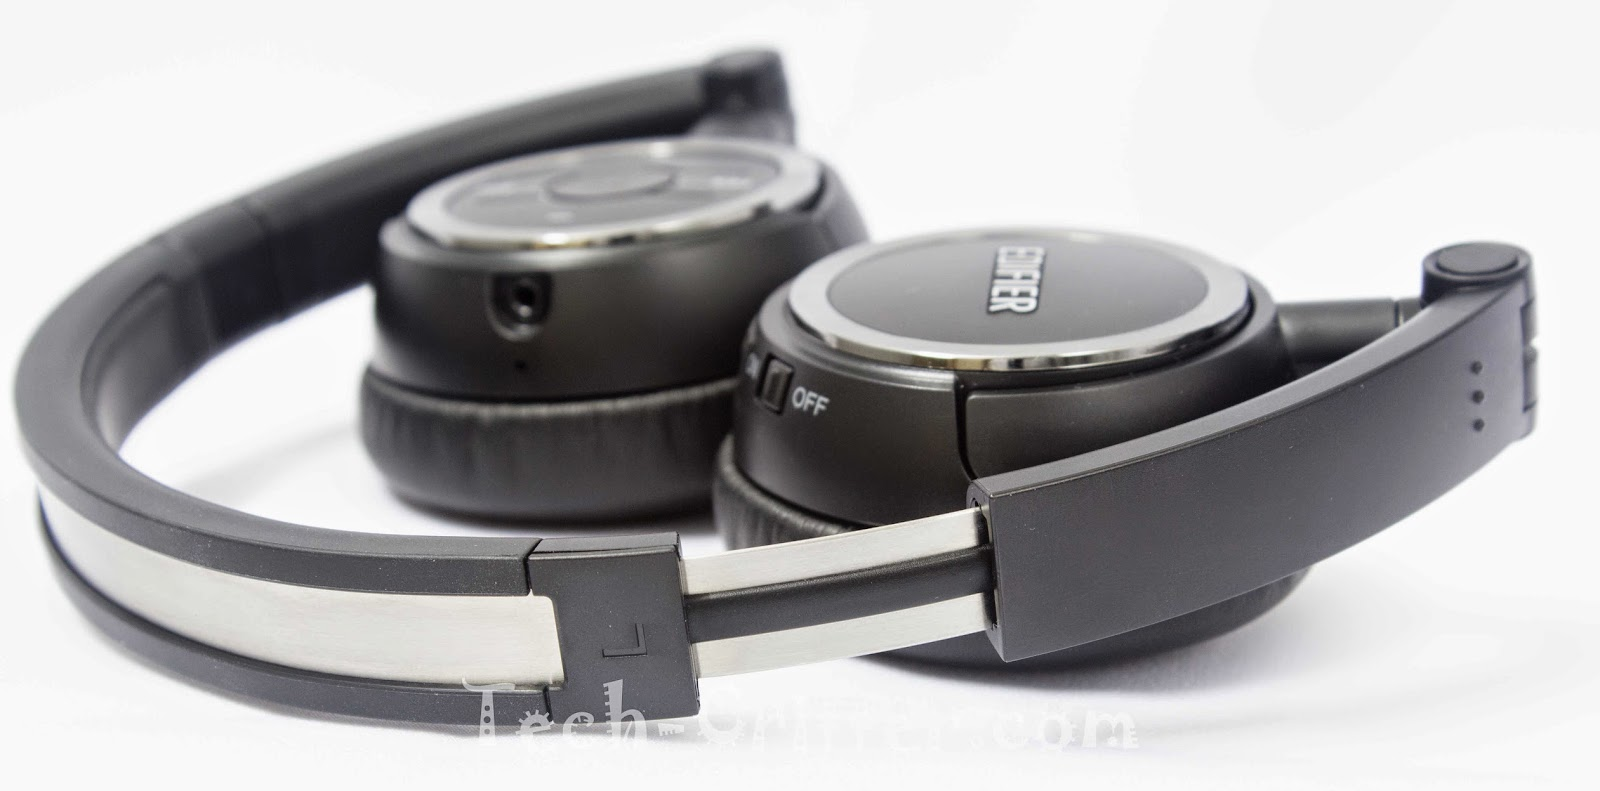 Unboxing & Review: Edifier W670BT Stereo Bluetooth Headset 42